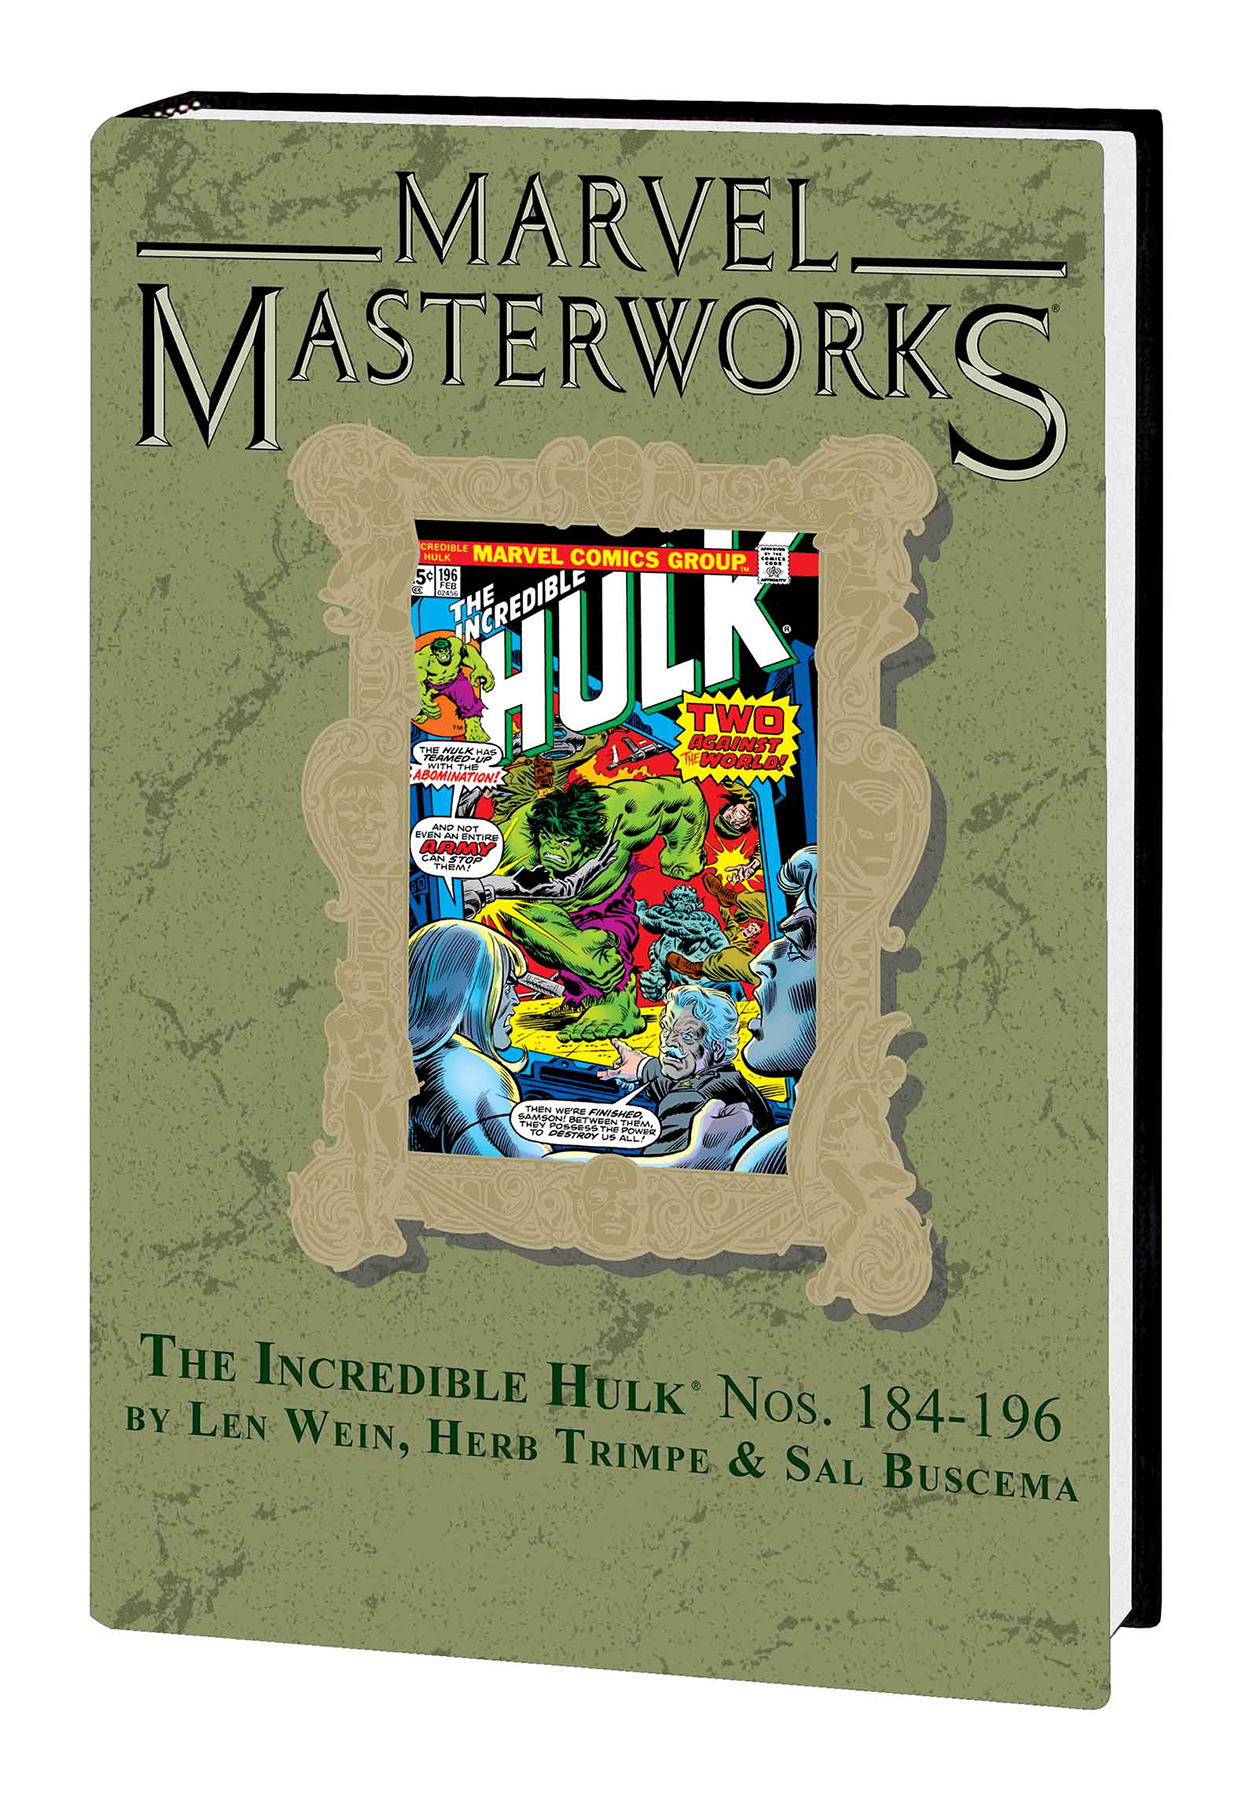 MMW INCREDIBLE HULK HC VOL 11 DM VAR ED 252